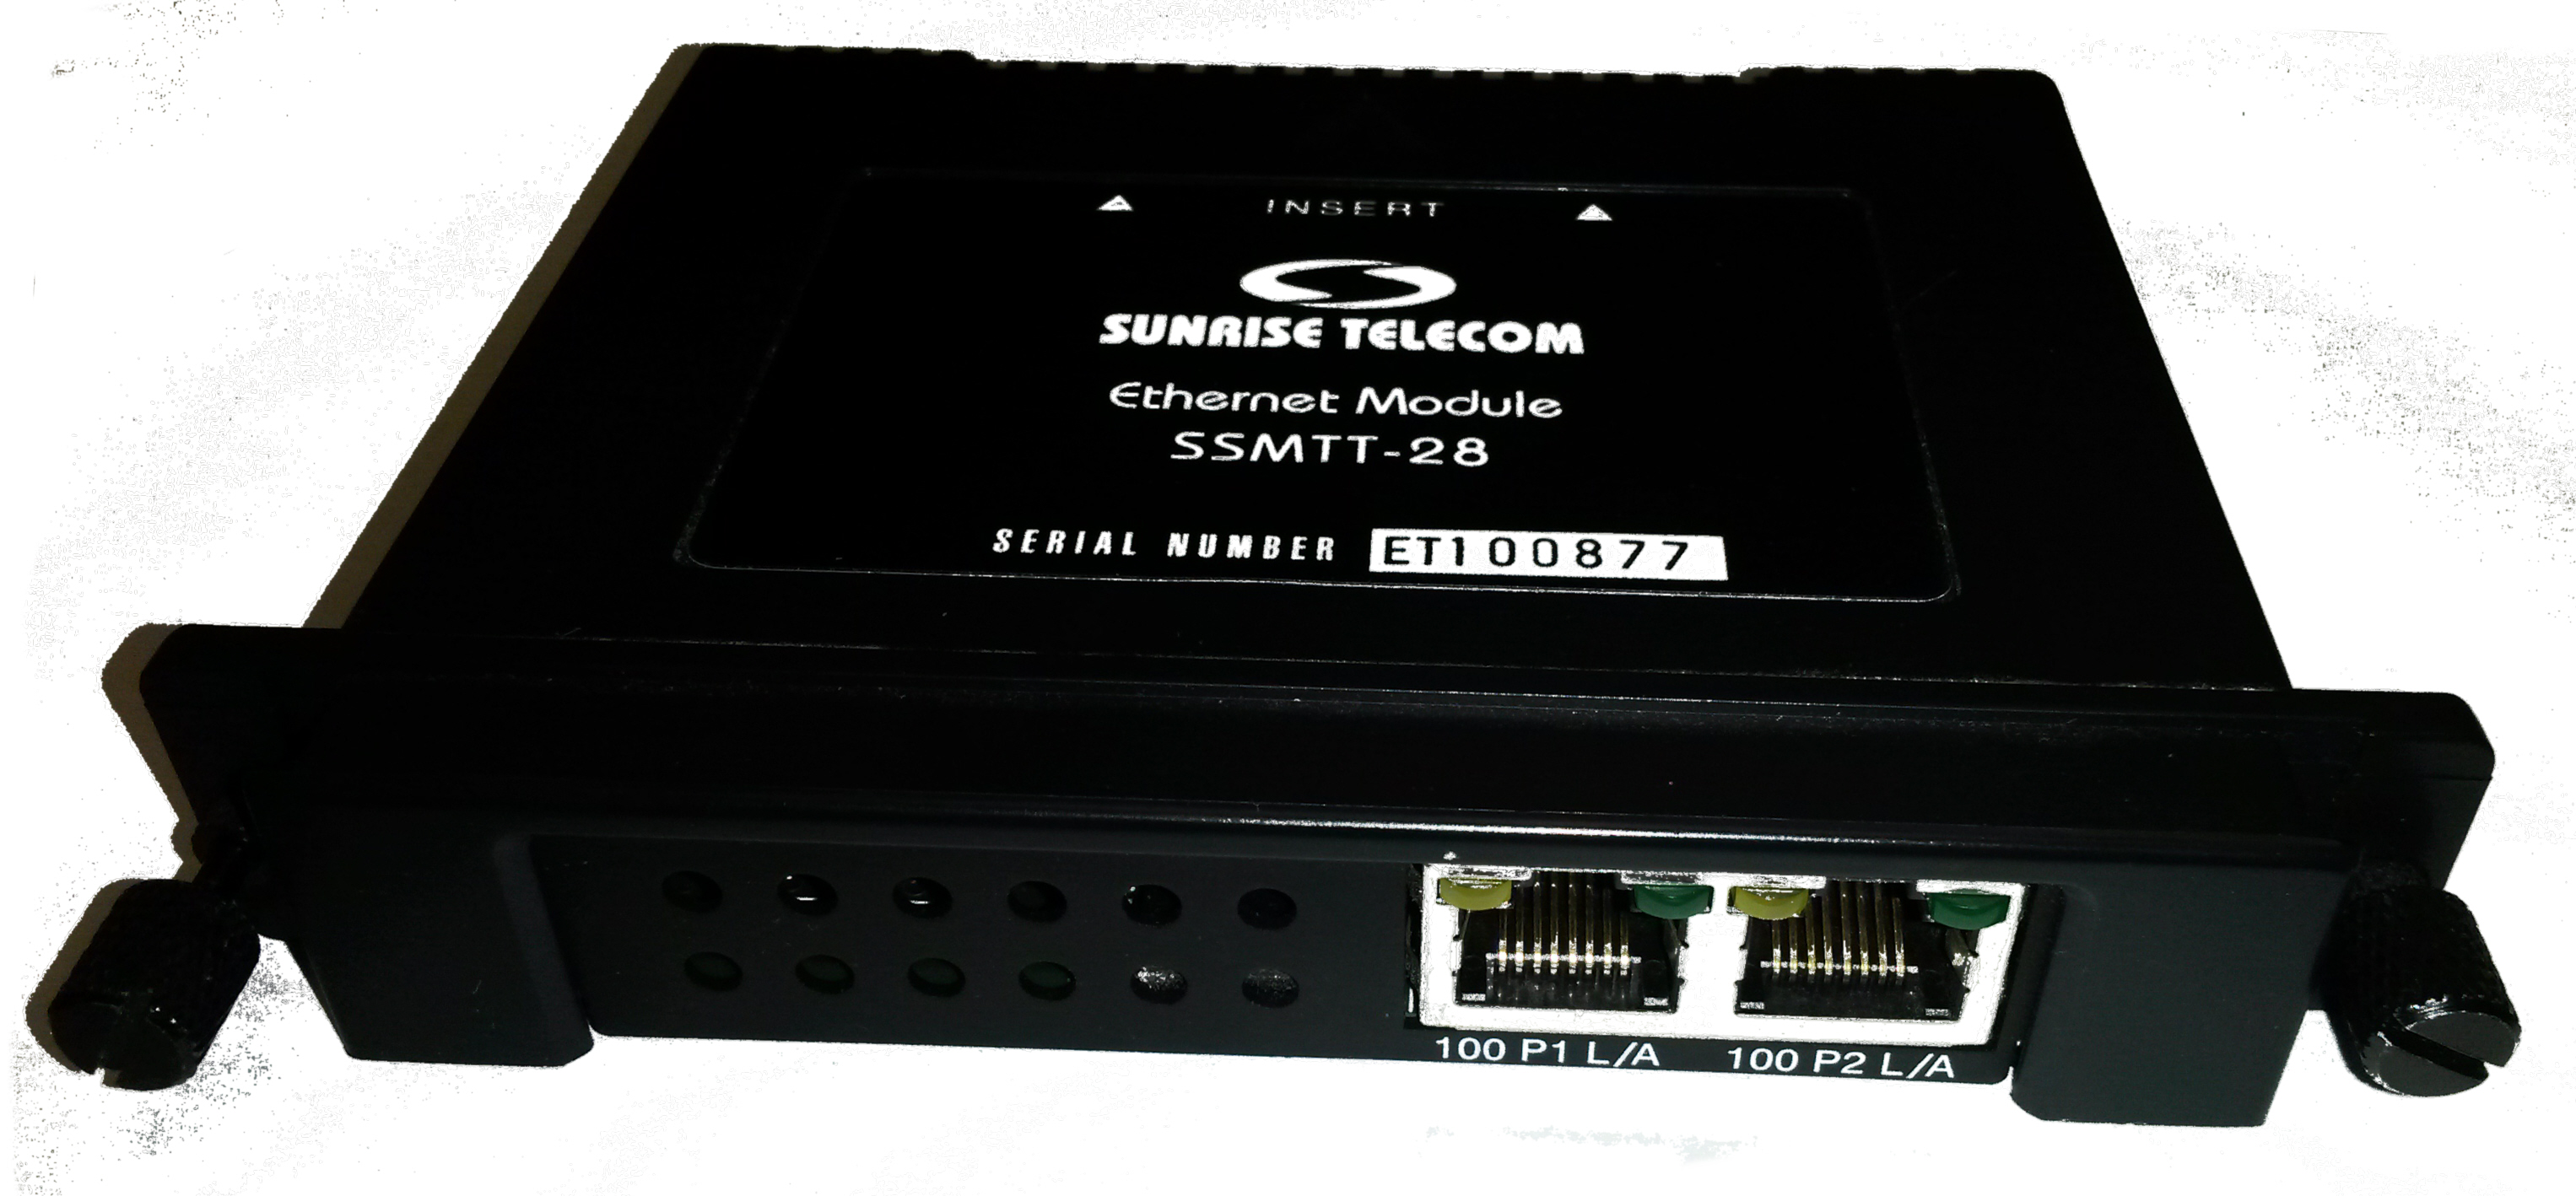 Sunrise Telecom SSMTT-28 just arrived